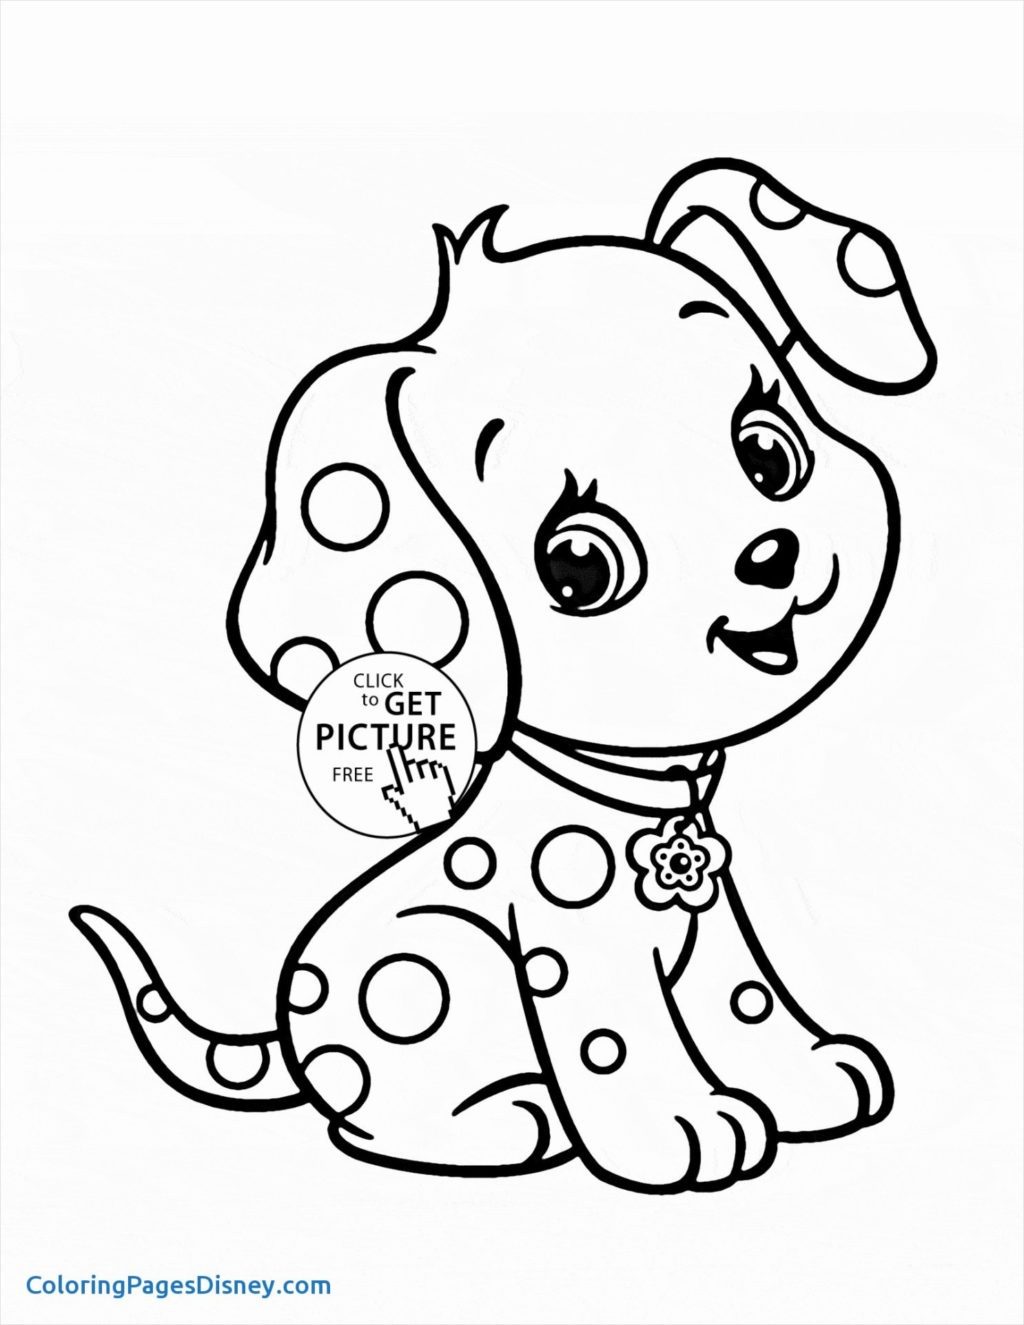 Coloring Book World ~ Disney Coloring Pages Frozen Baby Elsa And - Free Printable Disney Coloring Pages